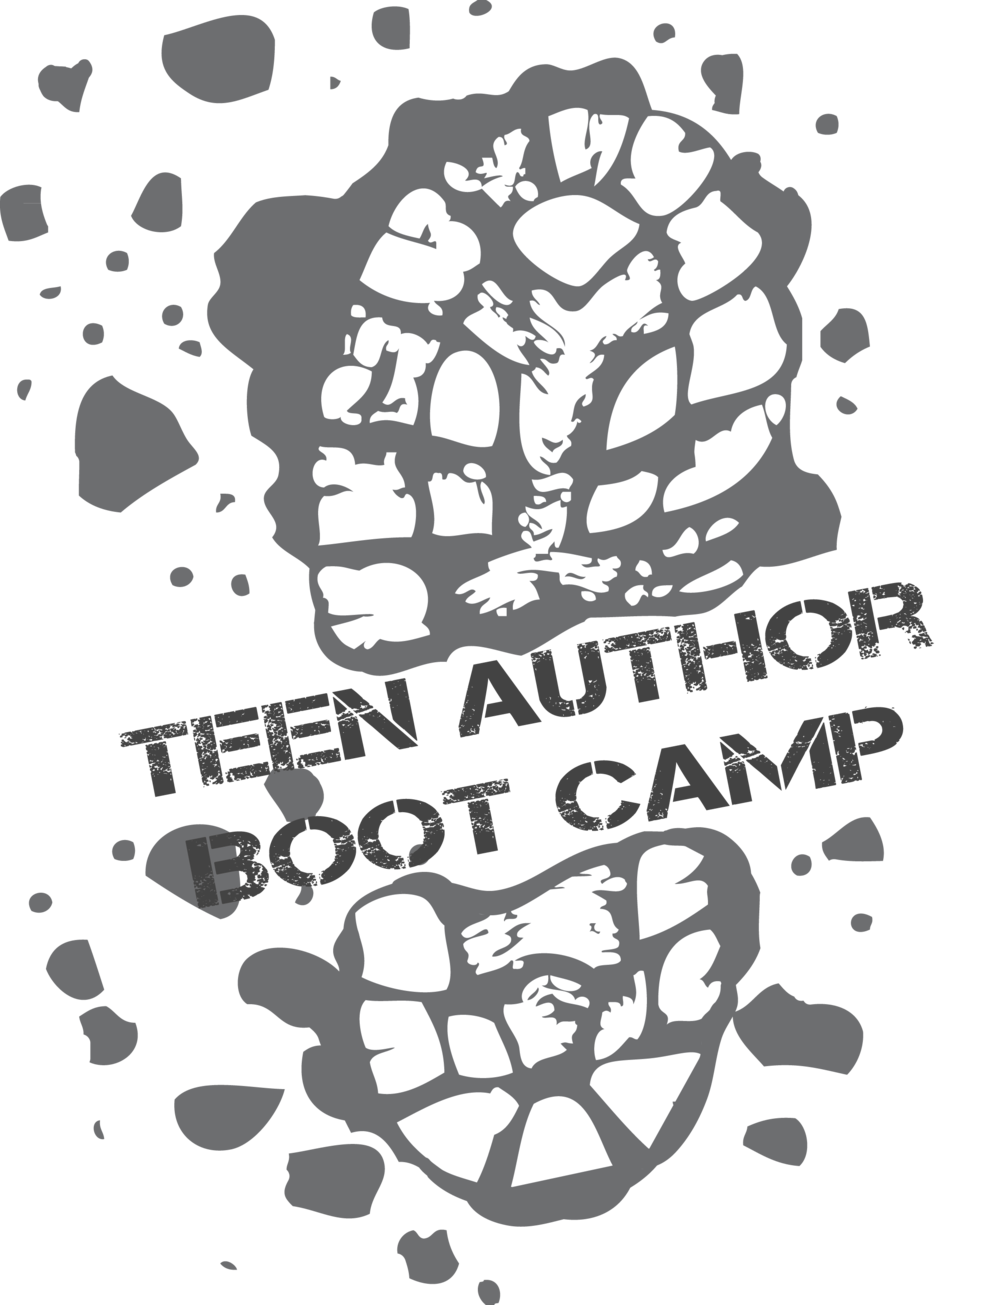 Teen Author Boot Camp March 25, 2017 Provo, UT www.teenauthorbootcamp.com